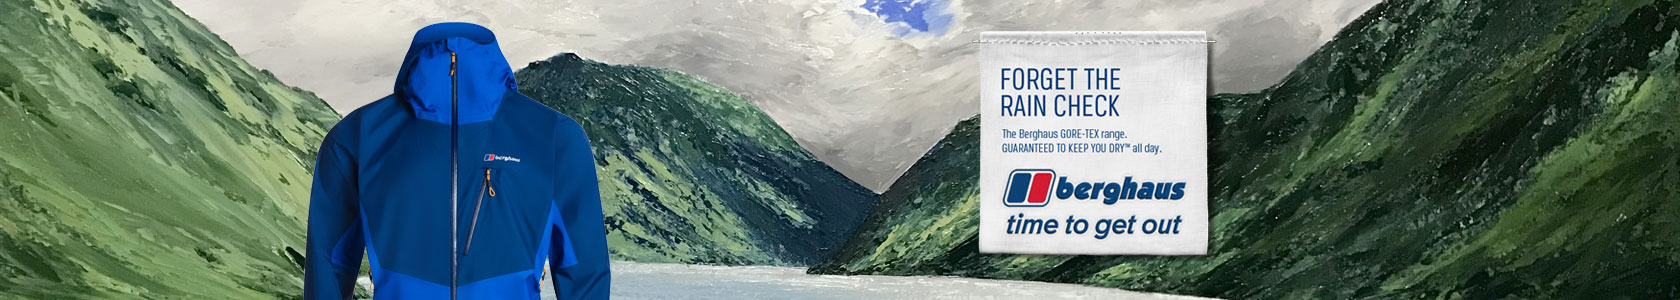 An oil painting of mountains and water on the background with a blue Berghaus jacket on the left and some copy on the right.